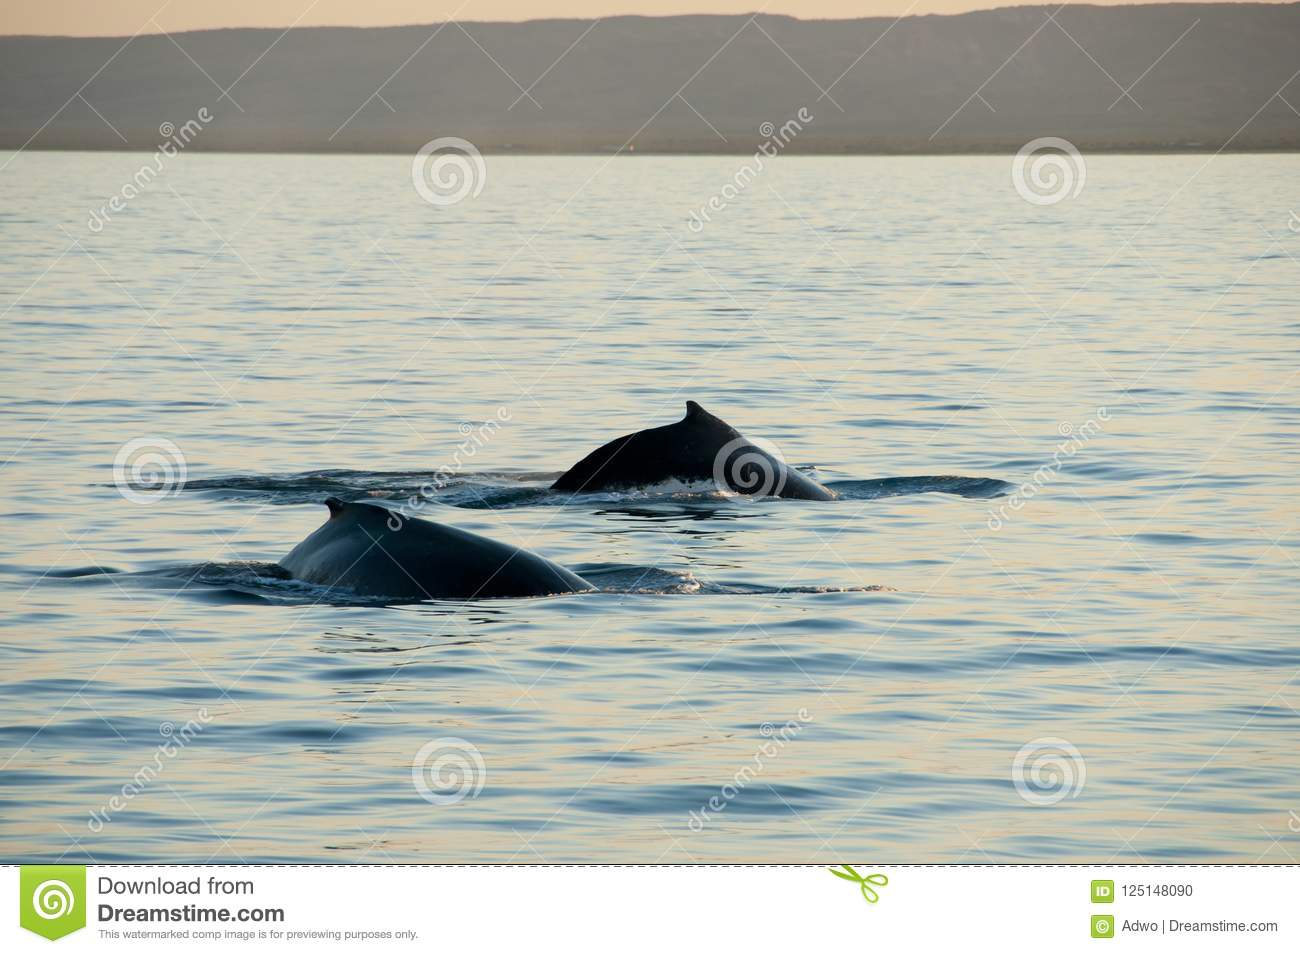 Humpback wieloryby